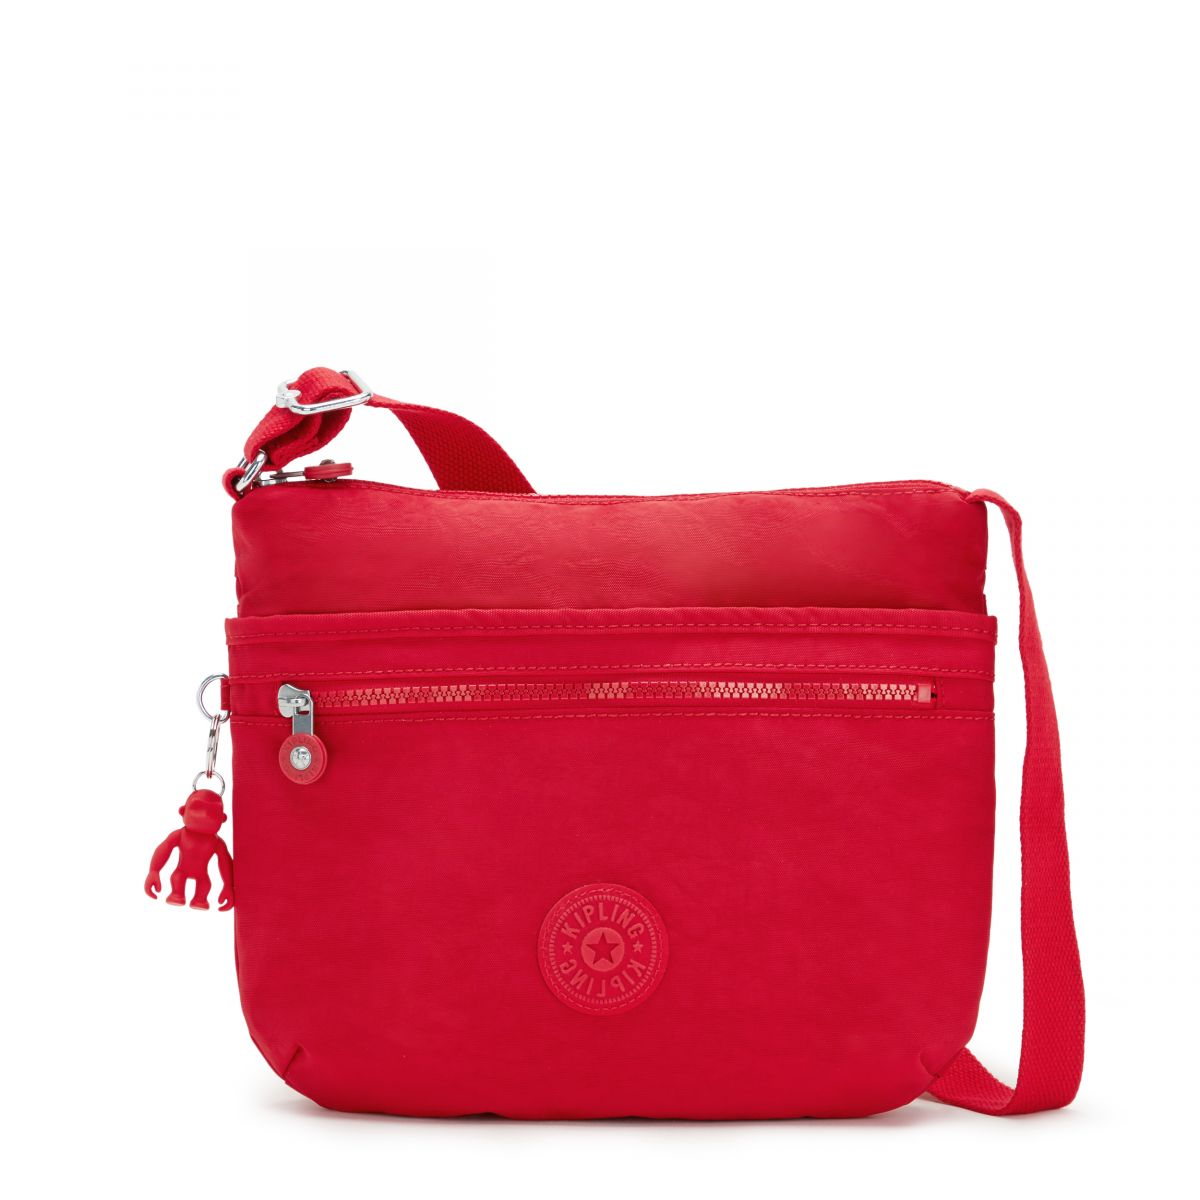 ARTO NEW IN by Kipling - Front view